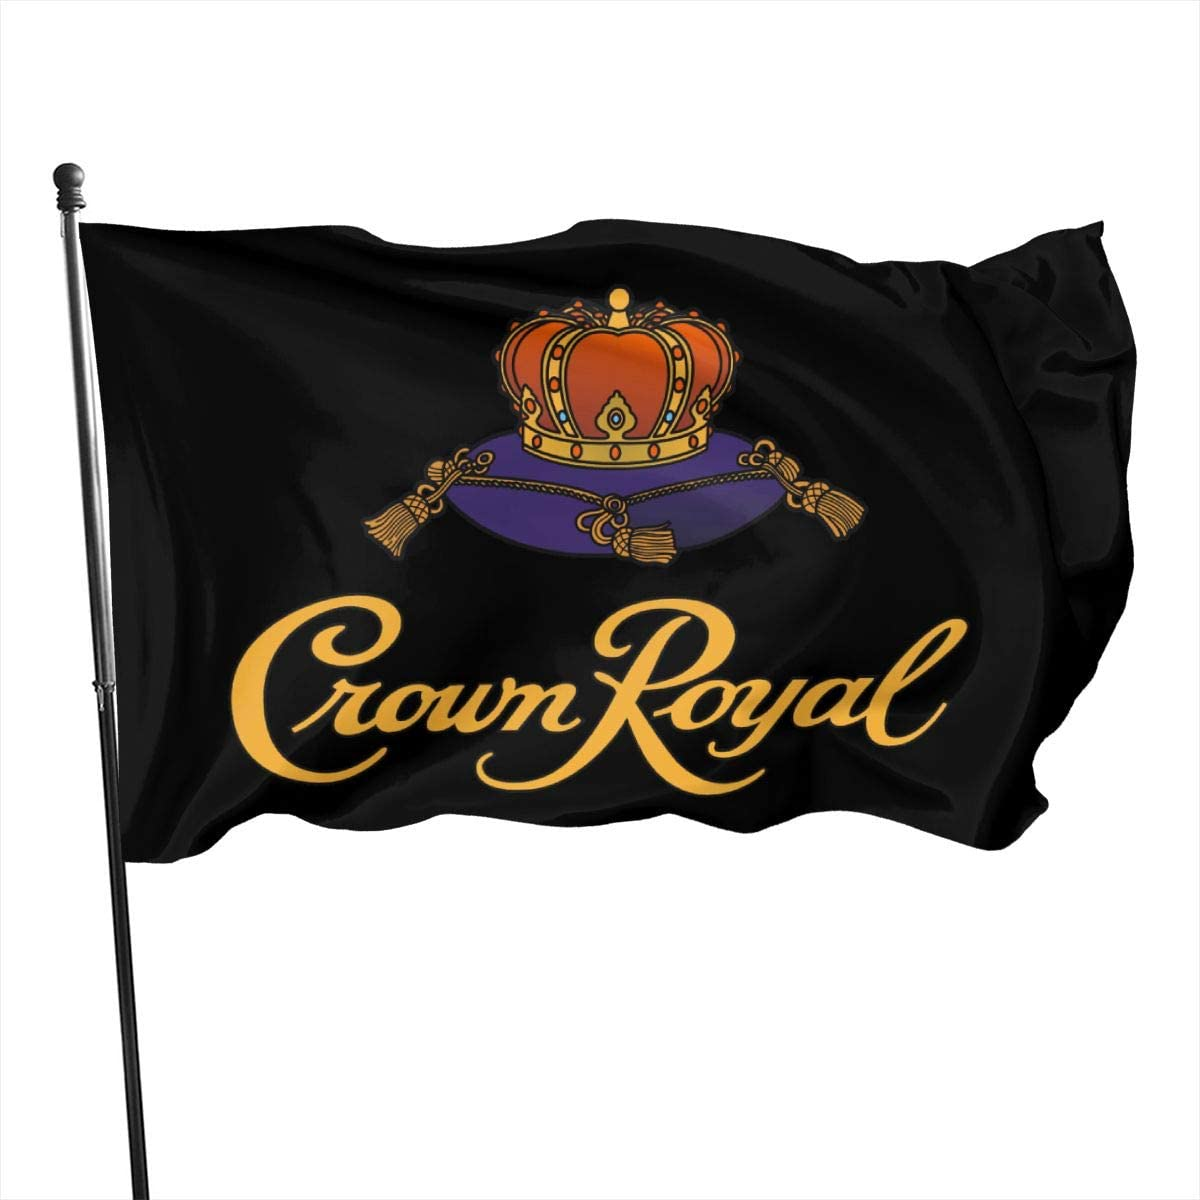 Crown Royal Logo Decorative Garden Flags, Outdoor Artificial Flag for Home, Garden Yard Decorations 3x5 Ft